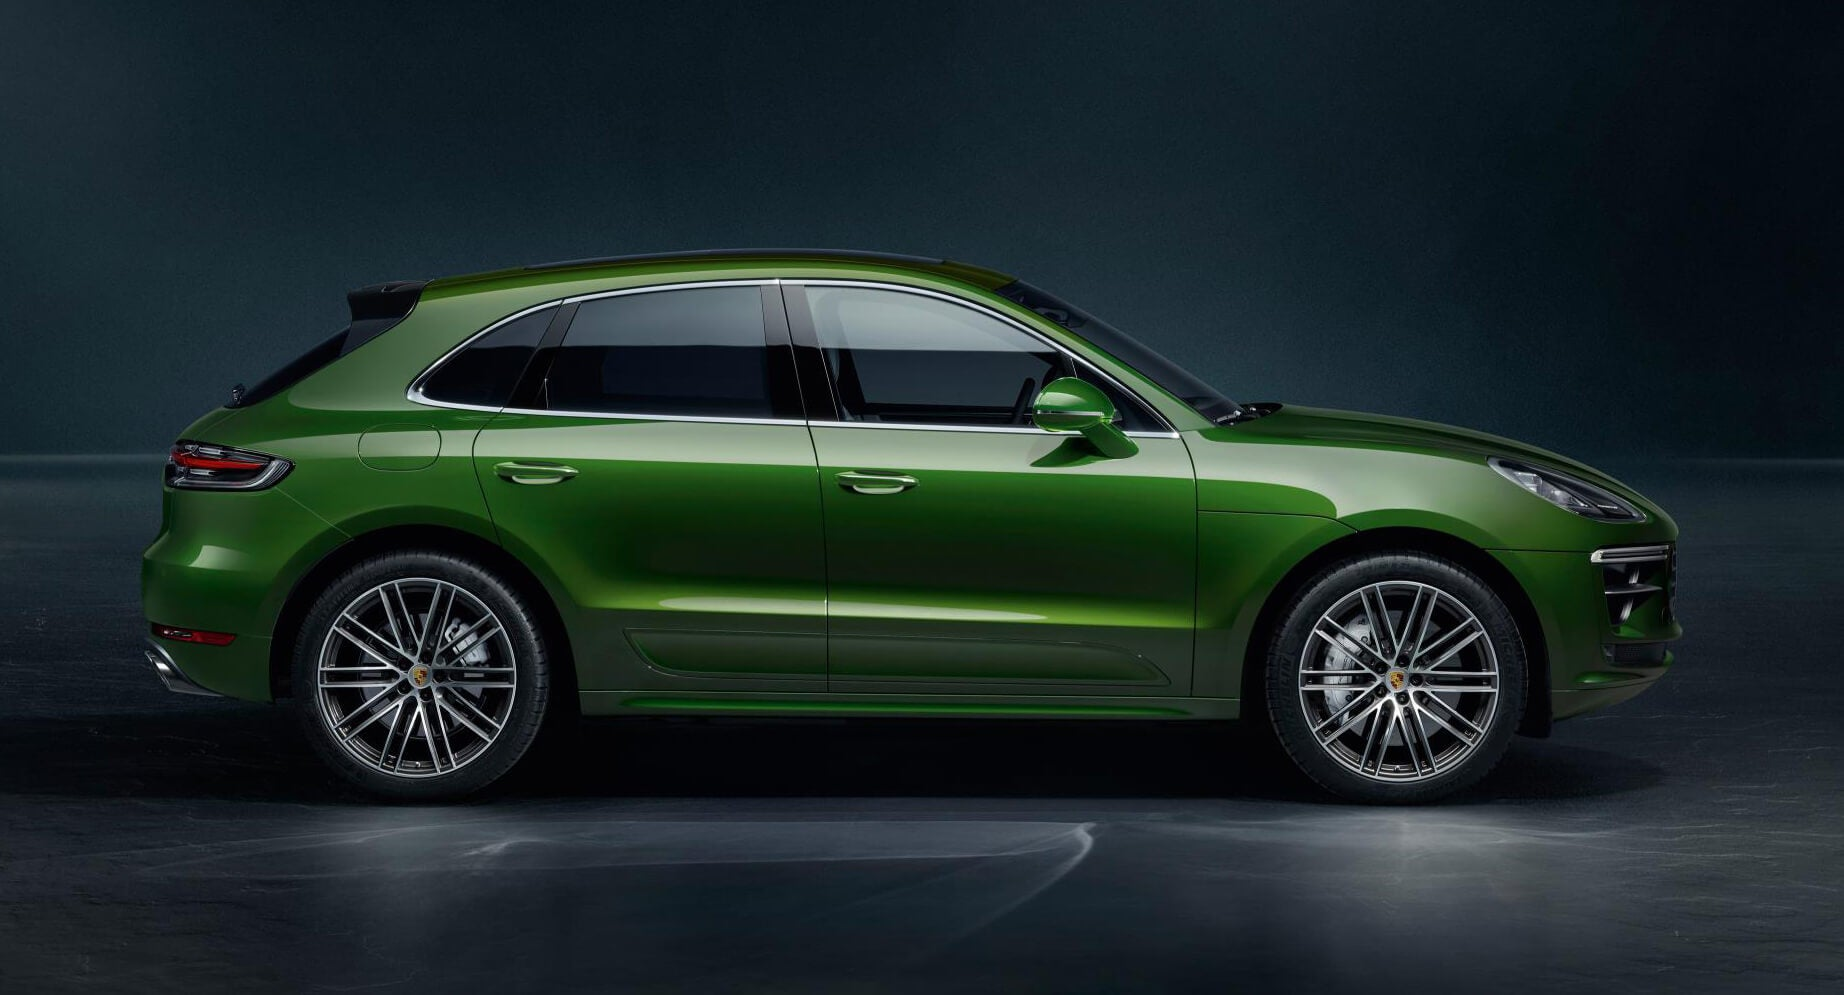 Lateral del Porsche Macan Turbo 2019